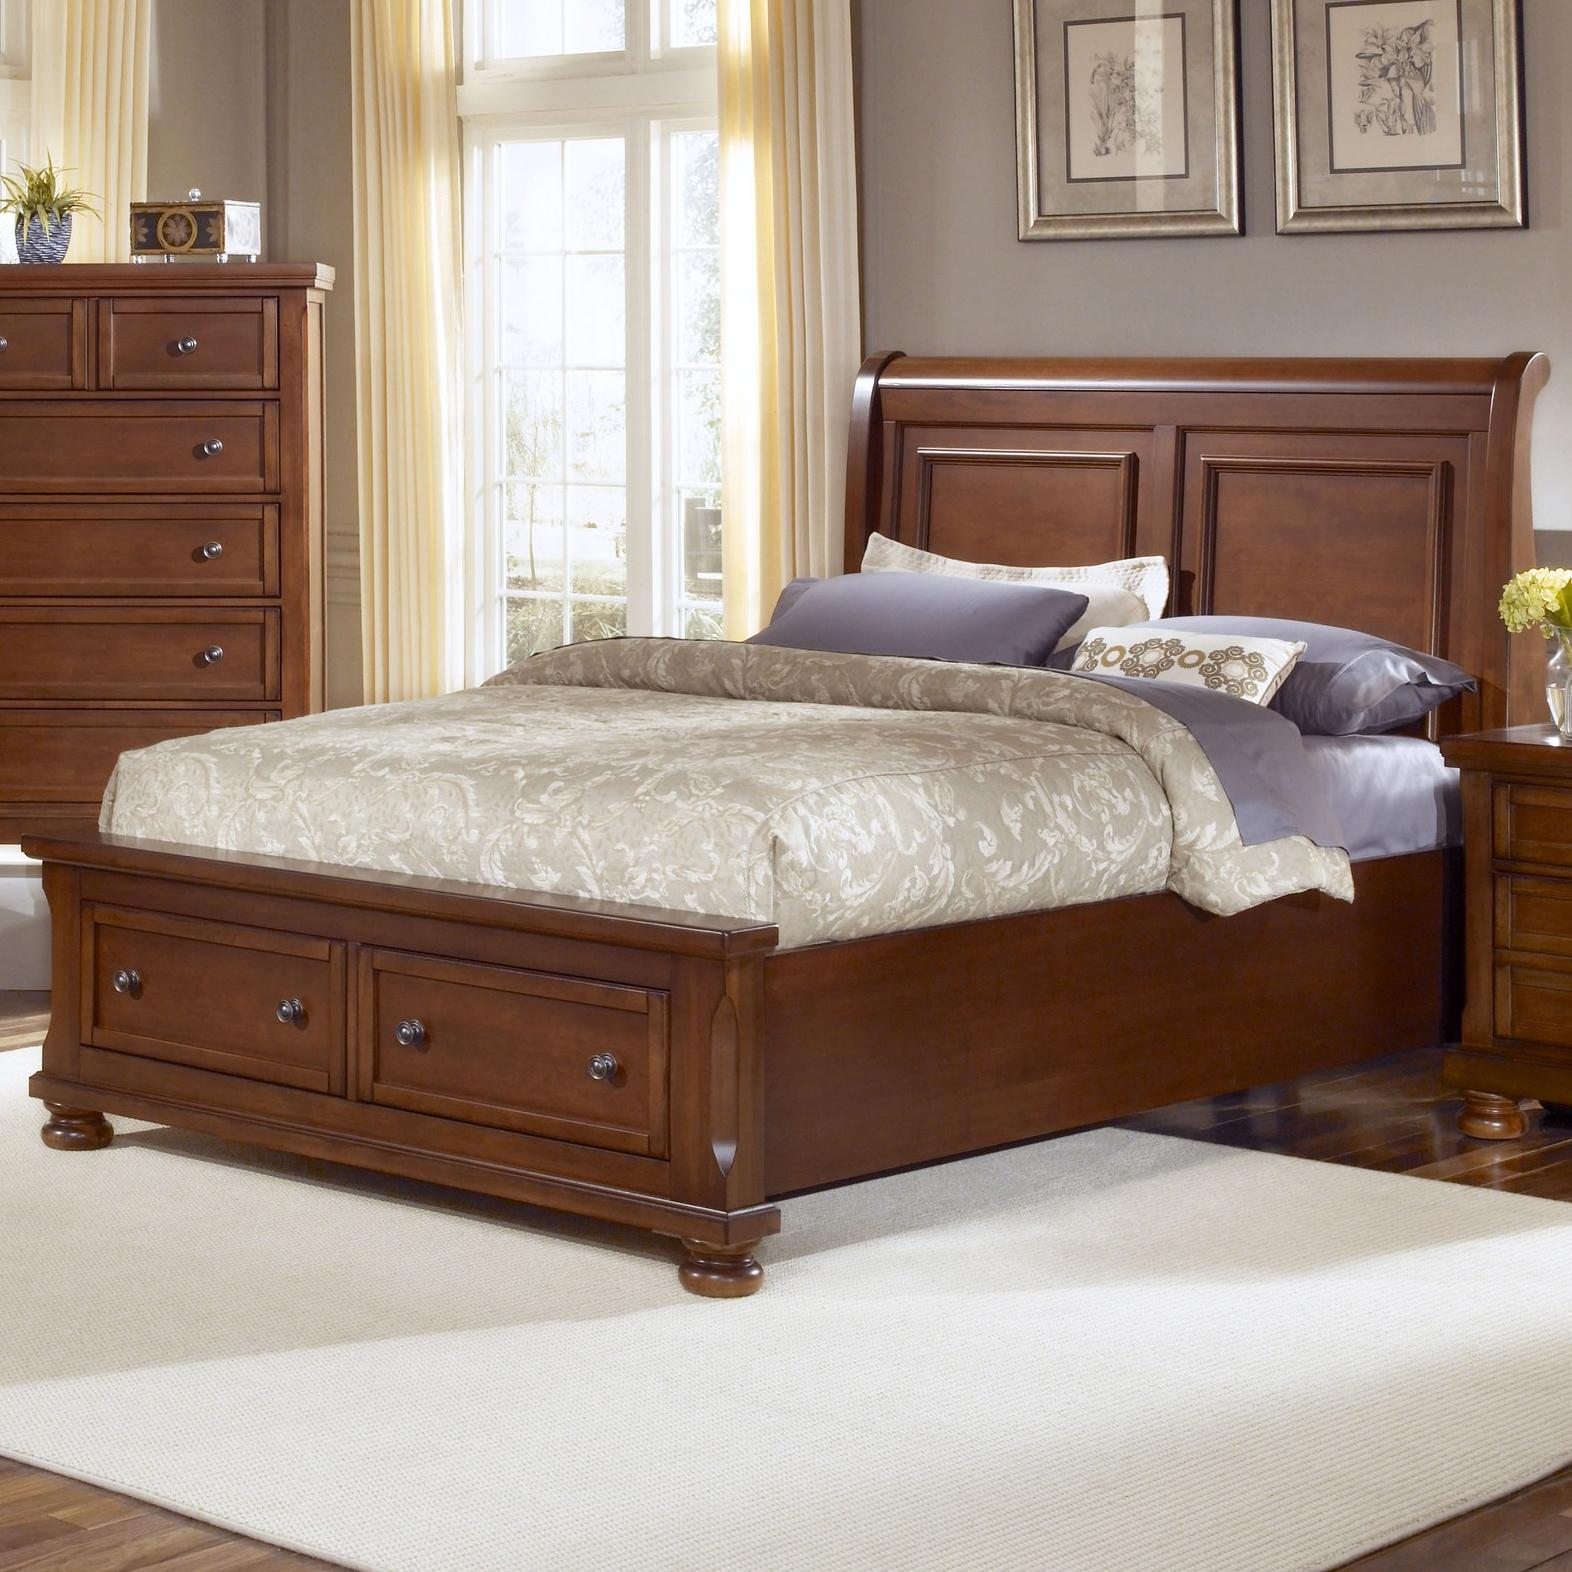 Vaughan bassett reflections king storage bed with sleigh 2 twin beds make a queen